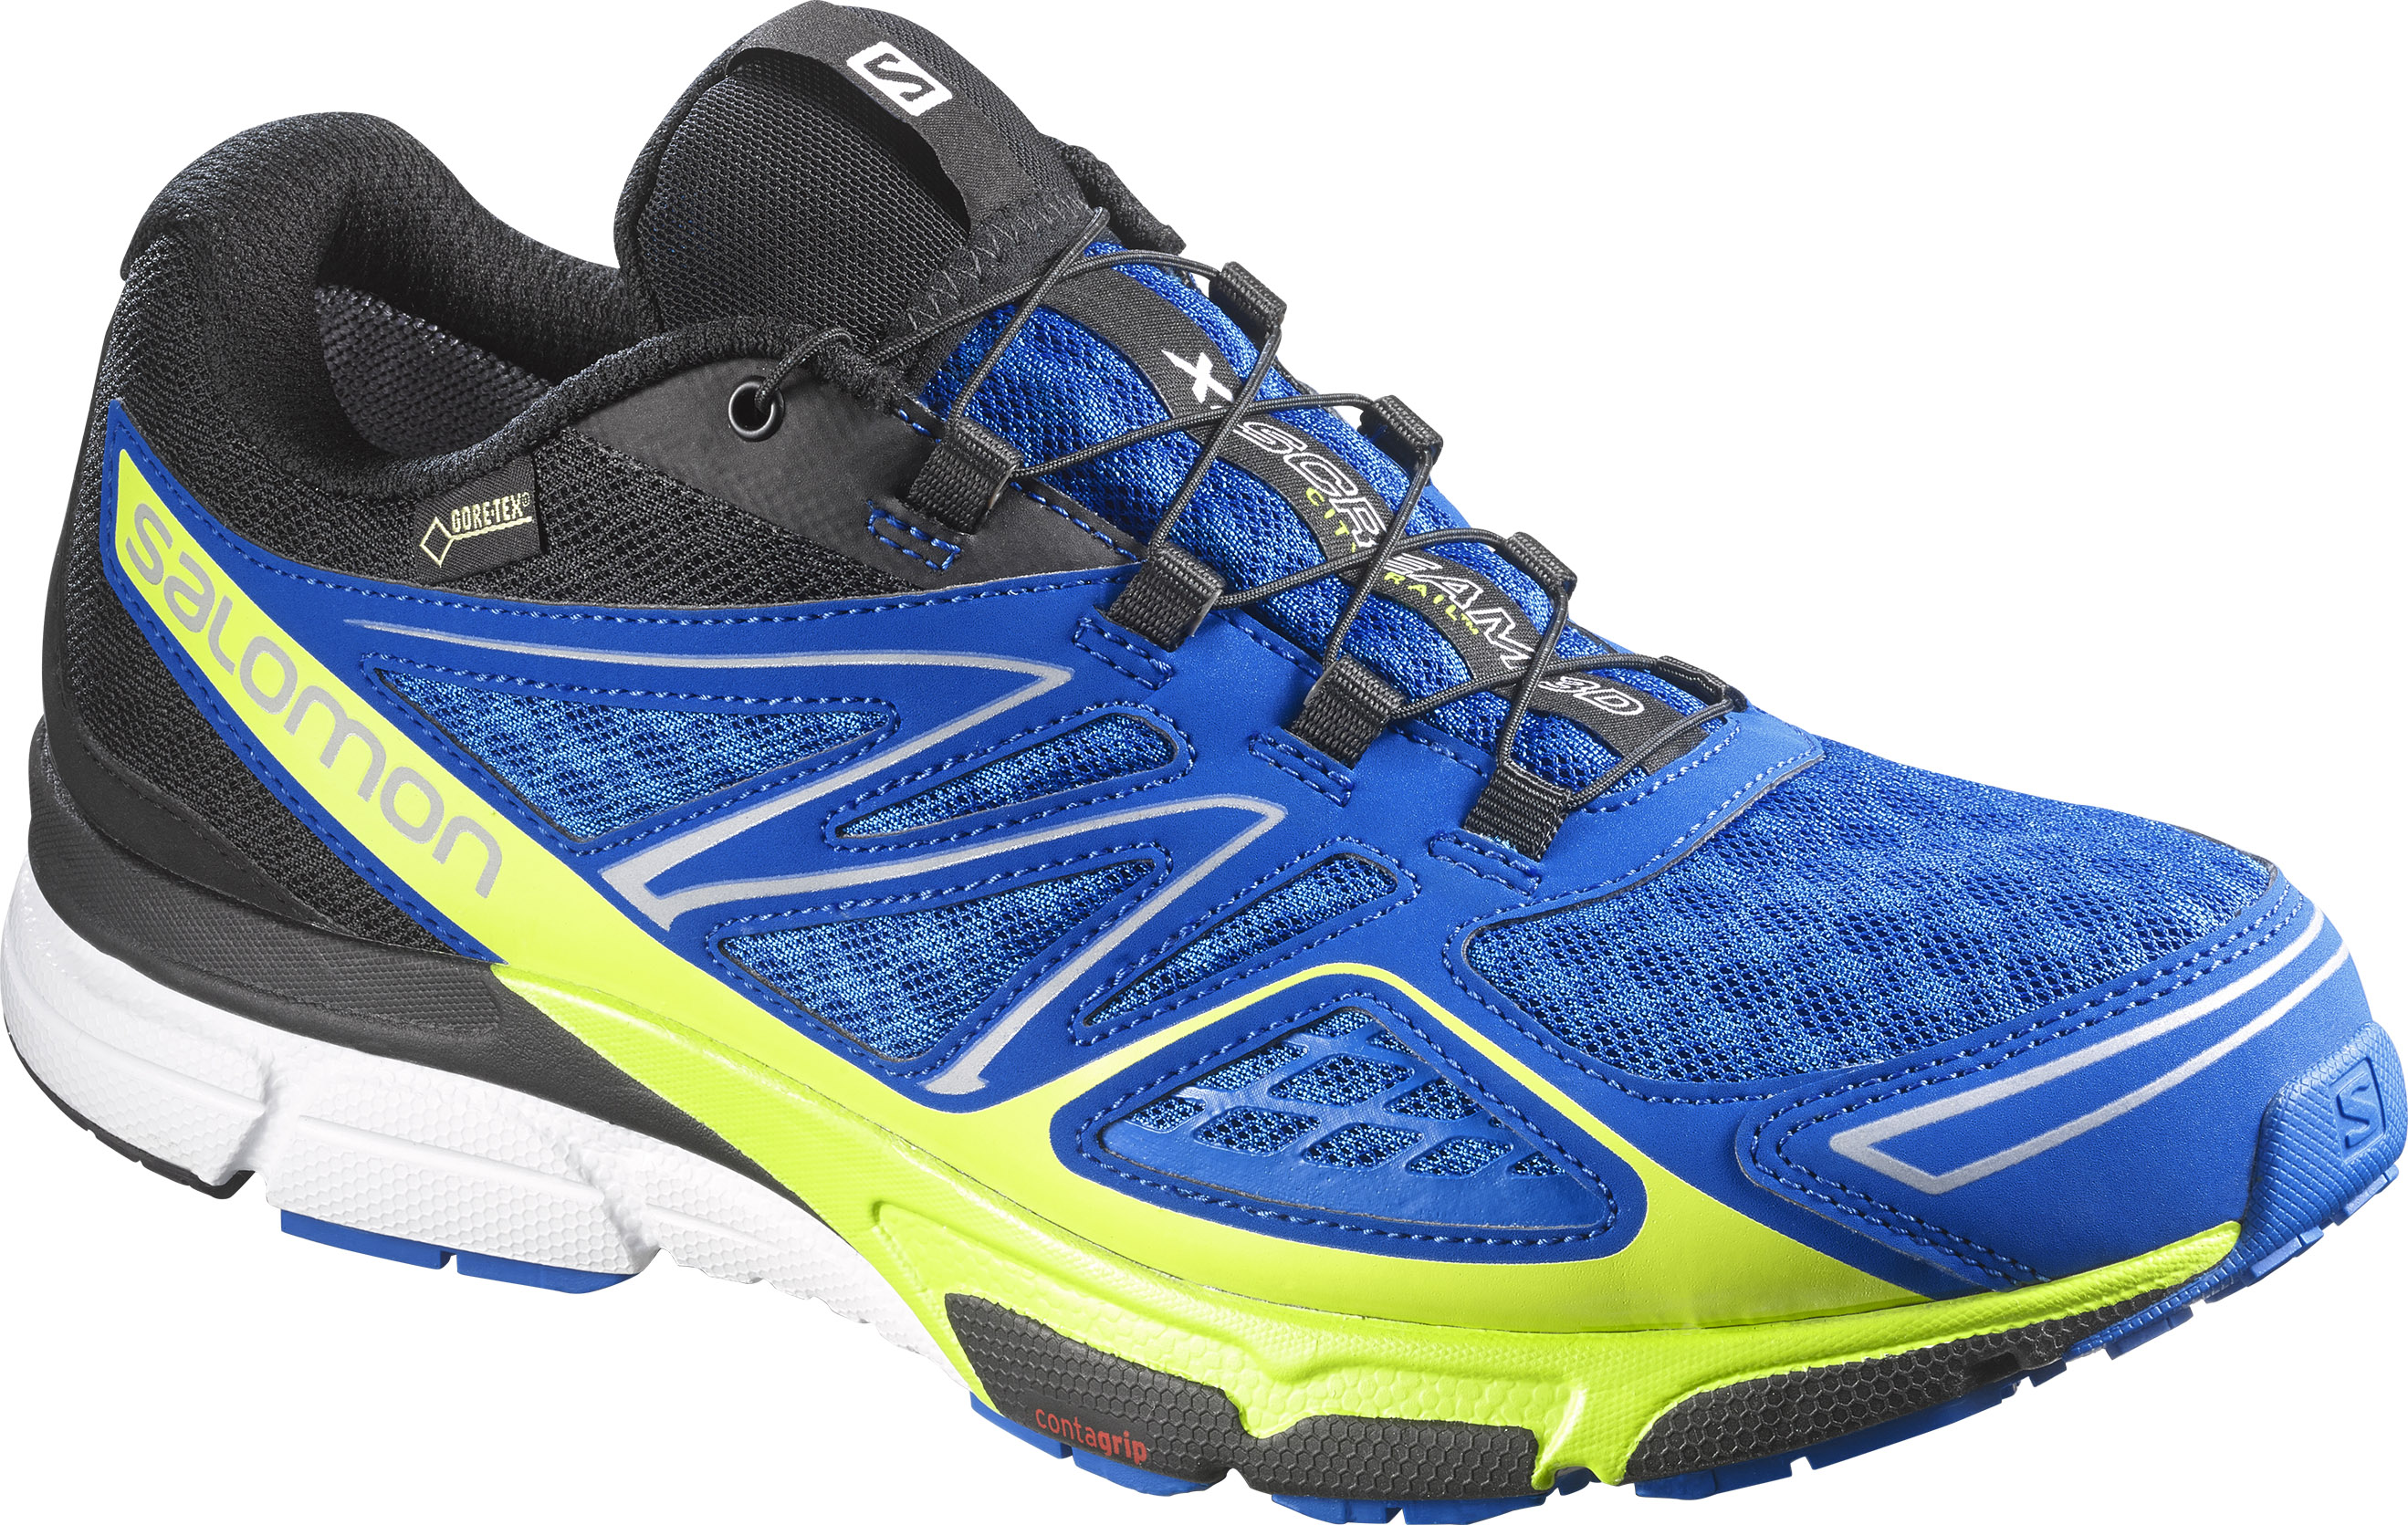 Salomon X-Scream 3D GTX 375965 41,3